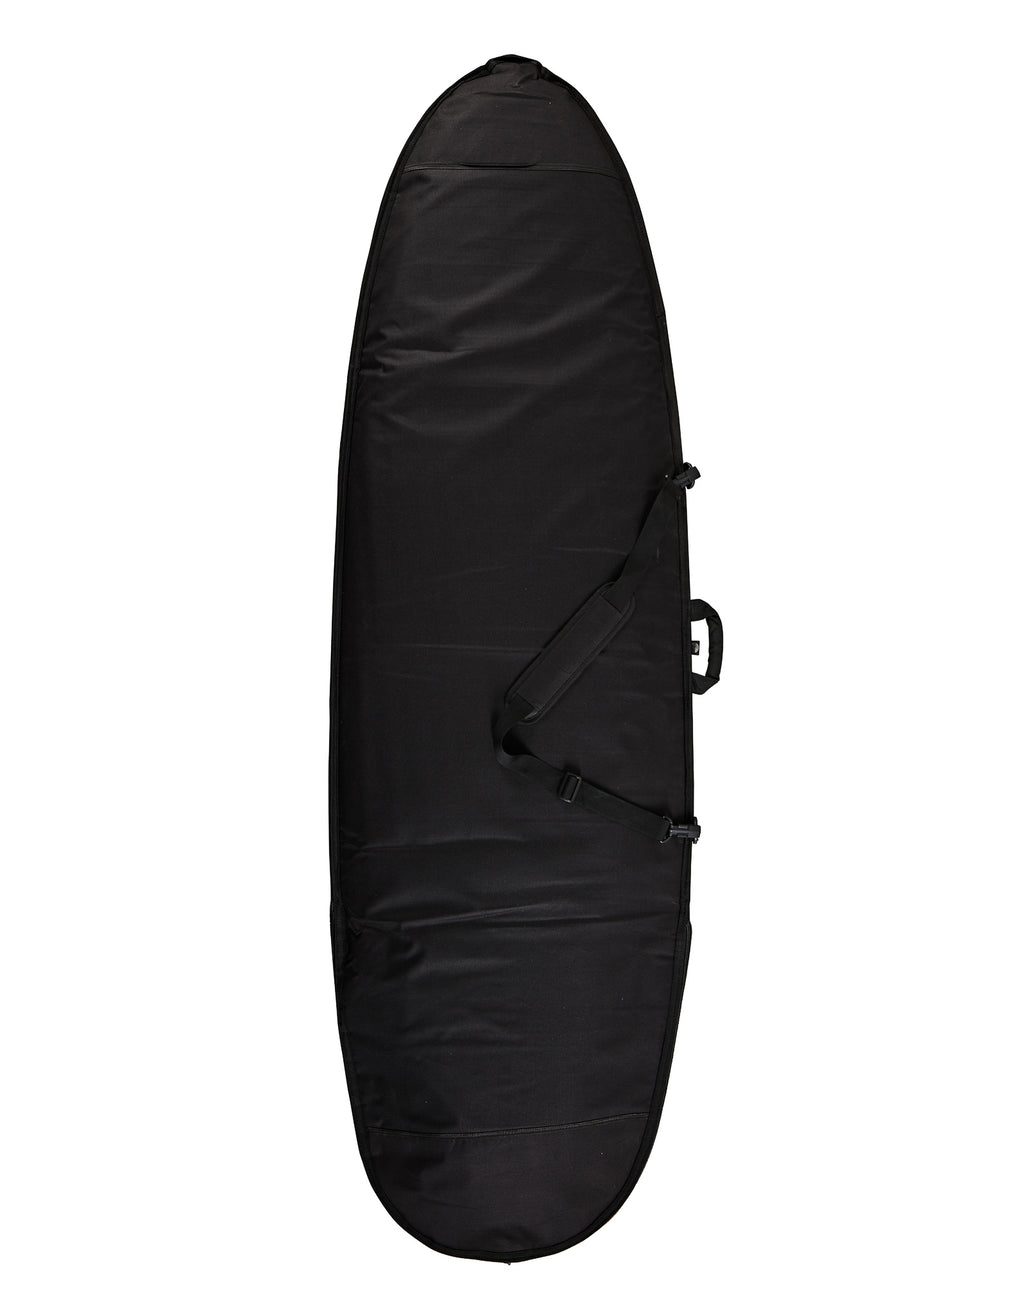 BOARD BAG - Stand Up Paddle Board